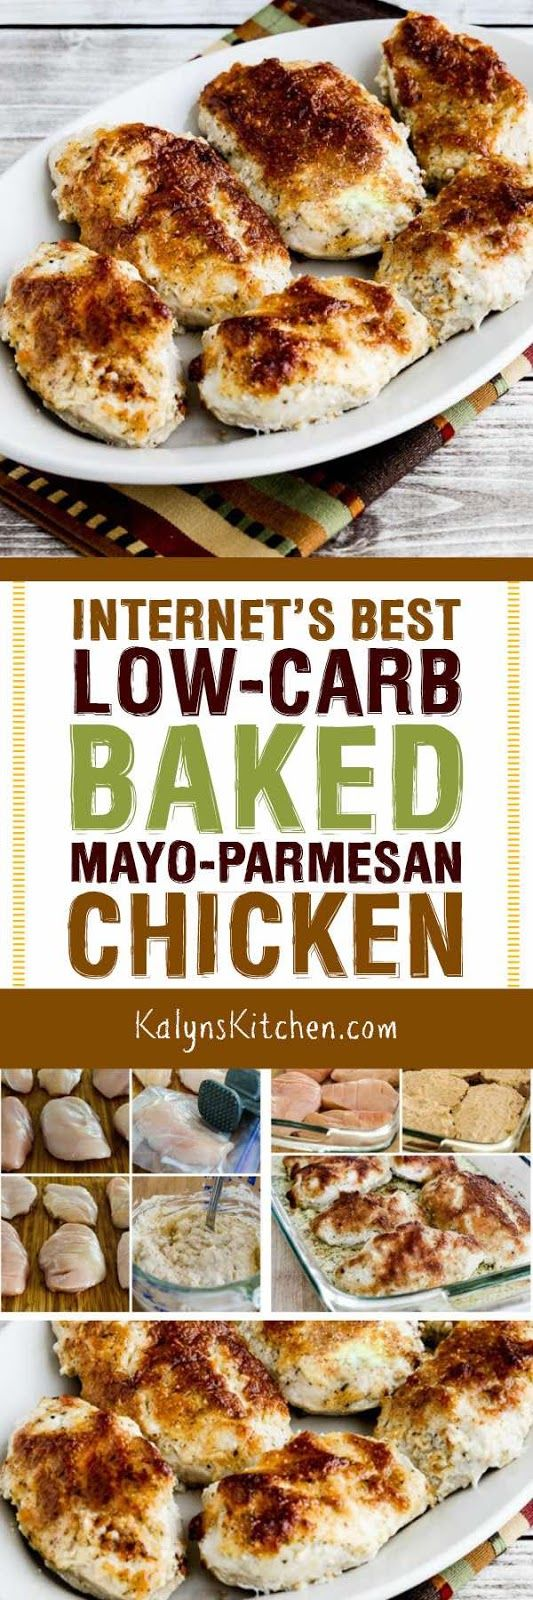 I saw versions of this Internet's Best Low-Carb Baked Mayo-Parmesan Chicken with rave reviews all over the web; here's my version of this internet classic and it's low-carb, Keto, low-glycemic, gluten-free and could be a treat for the South Beach Diet with lighter mayo. [found on KalynsKitchen.com] #LowCarbBakedChicken #LowCarbMayoParmesanChicken #InternetsBestBakedChicken